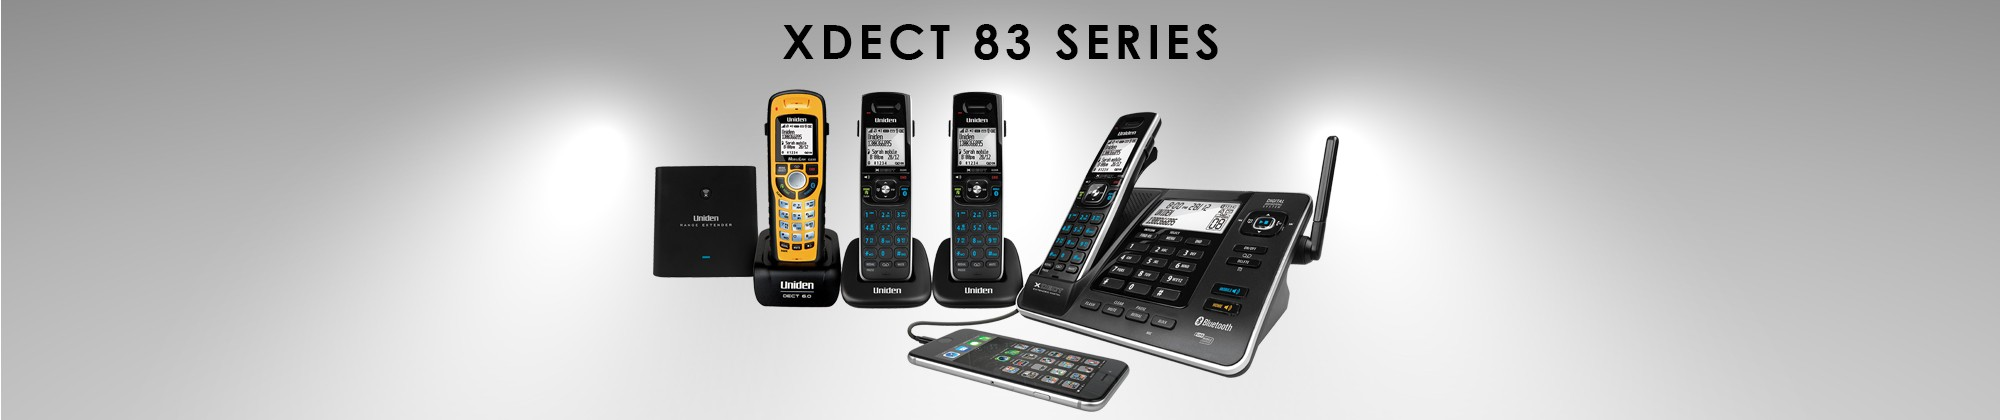 XDECT 83 Series